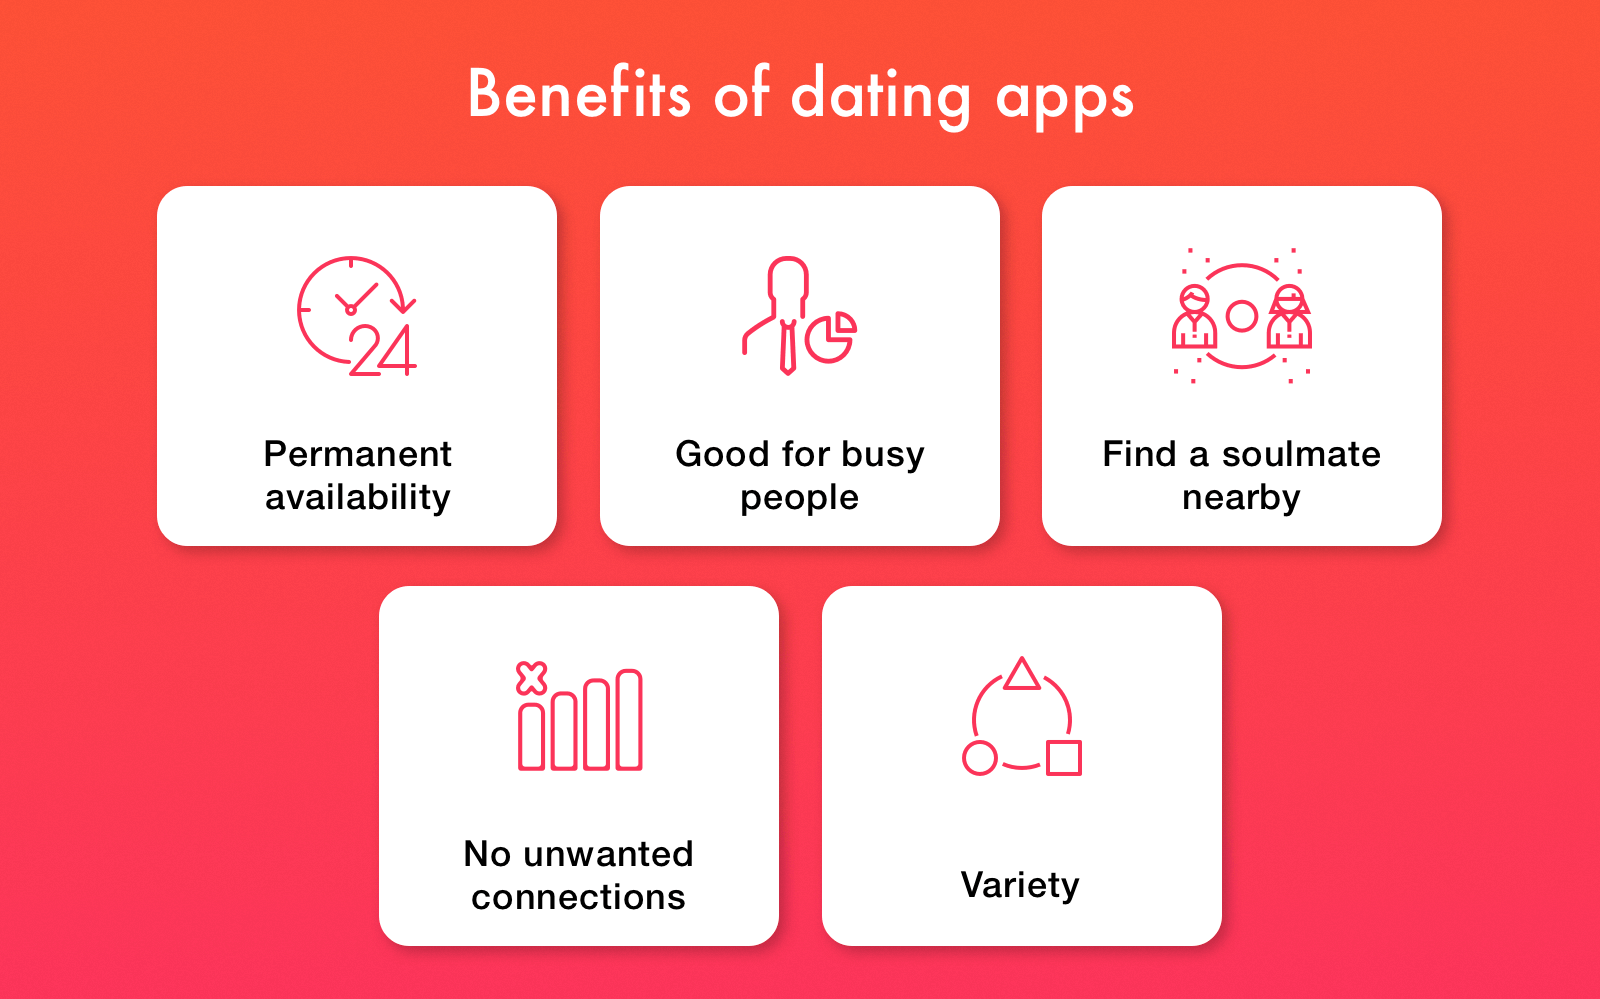 freeware dating app som är Nick kanon daterad juni 2015